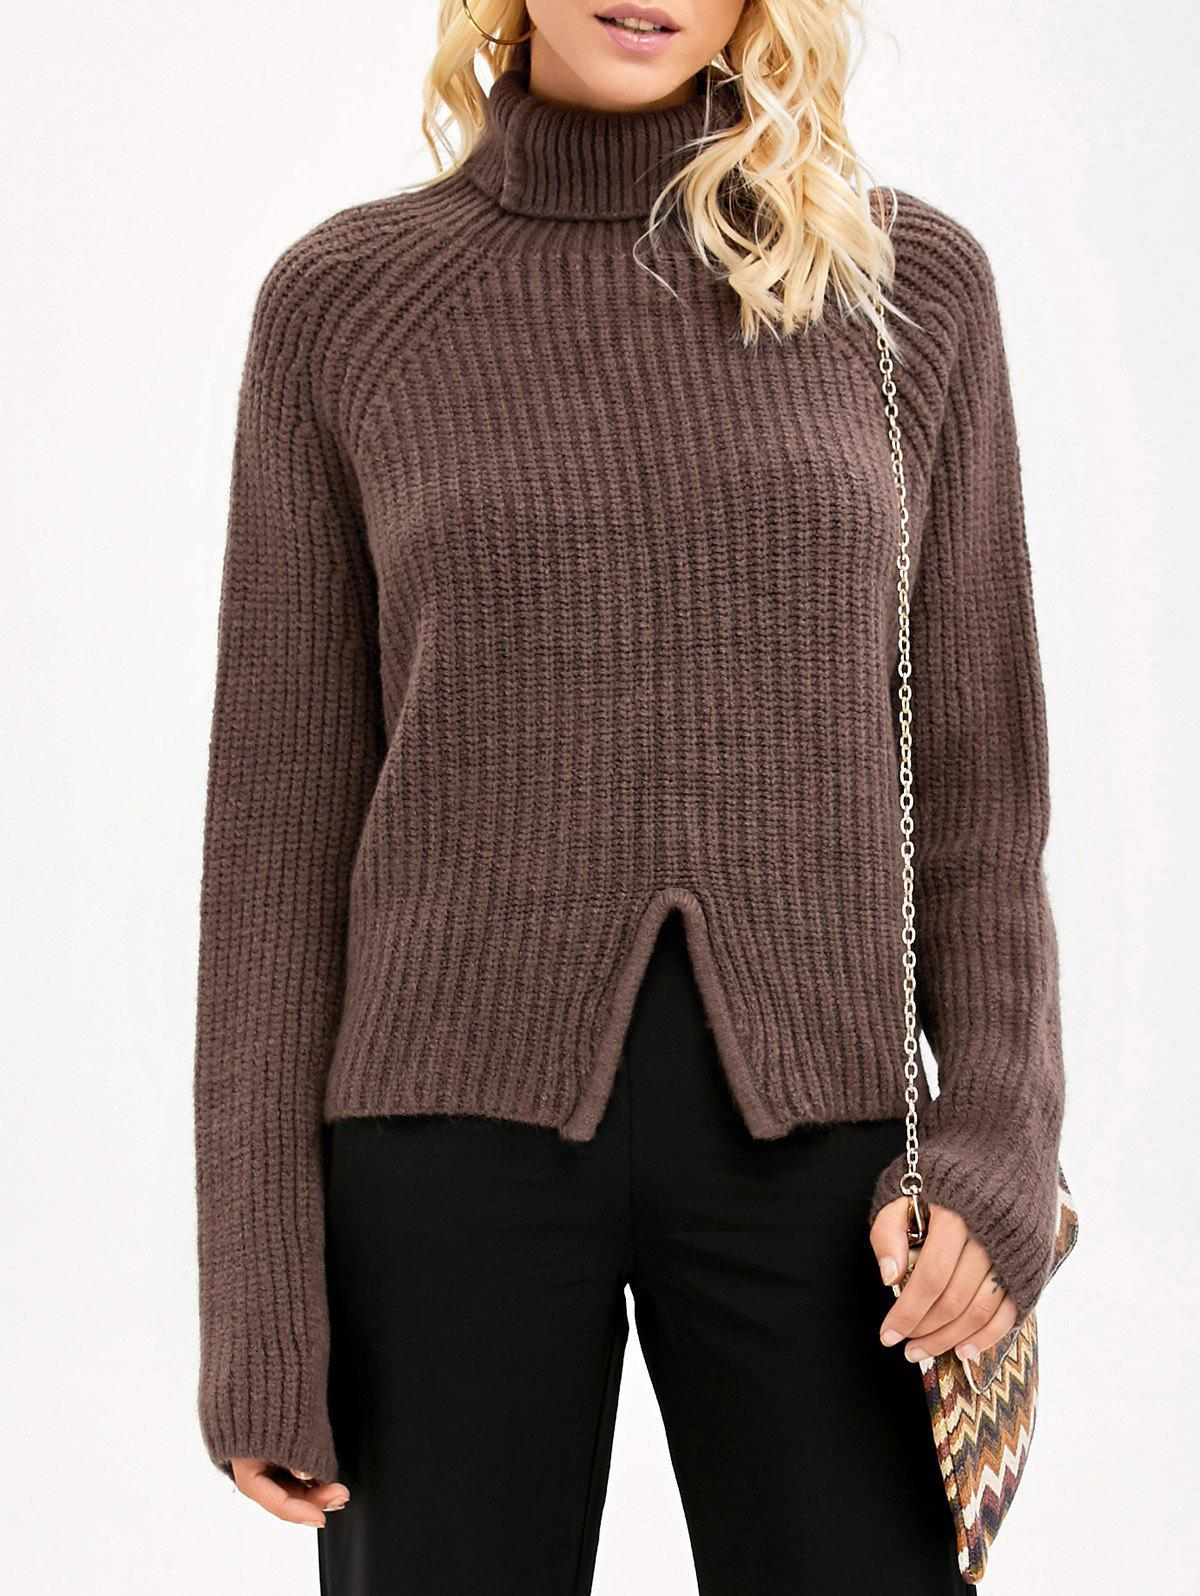 Front Slit Sweater front slit long knit sweater